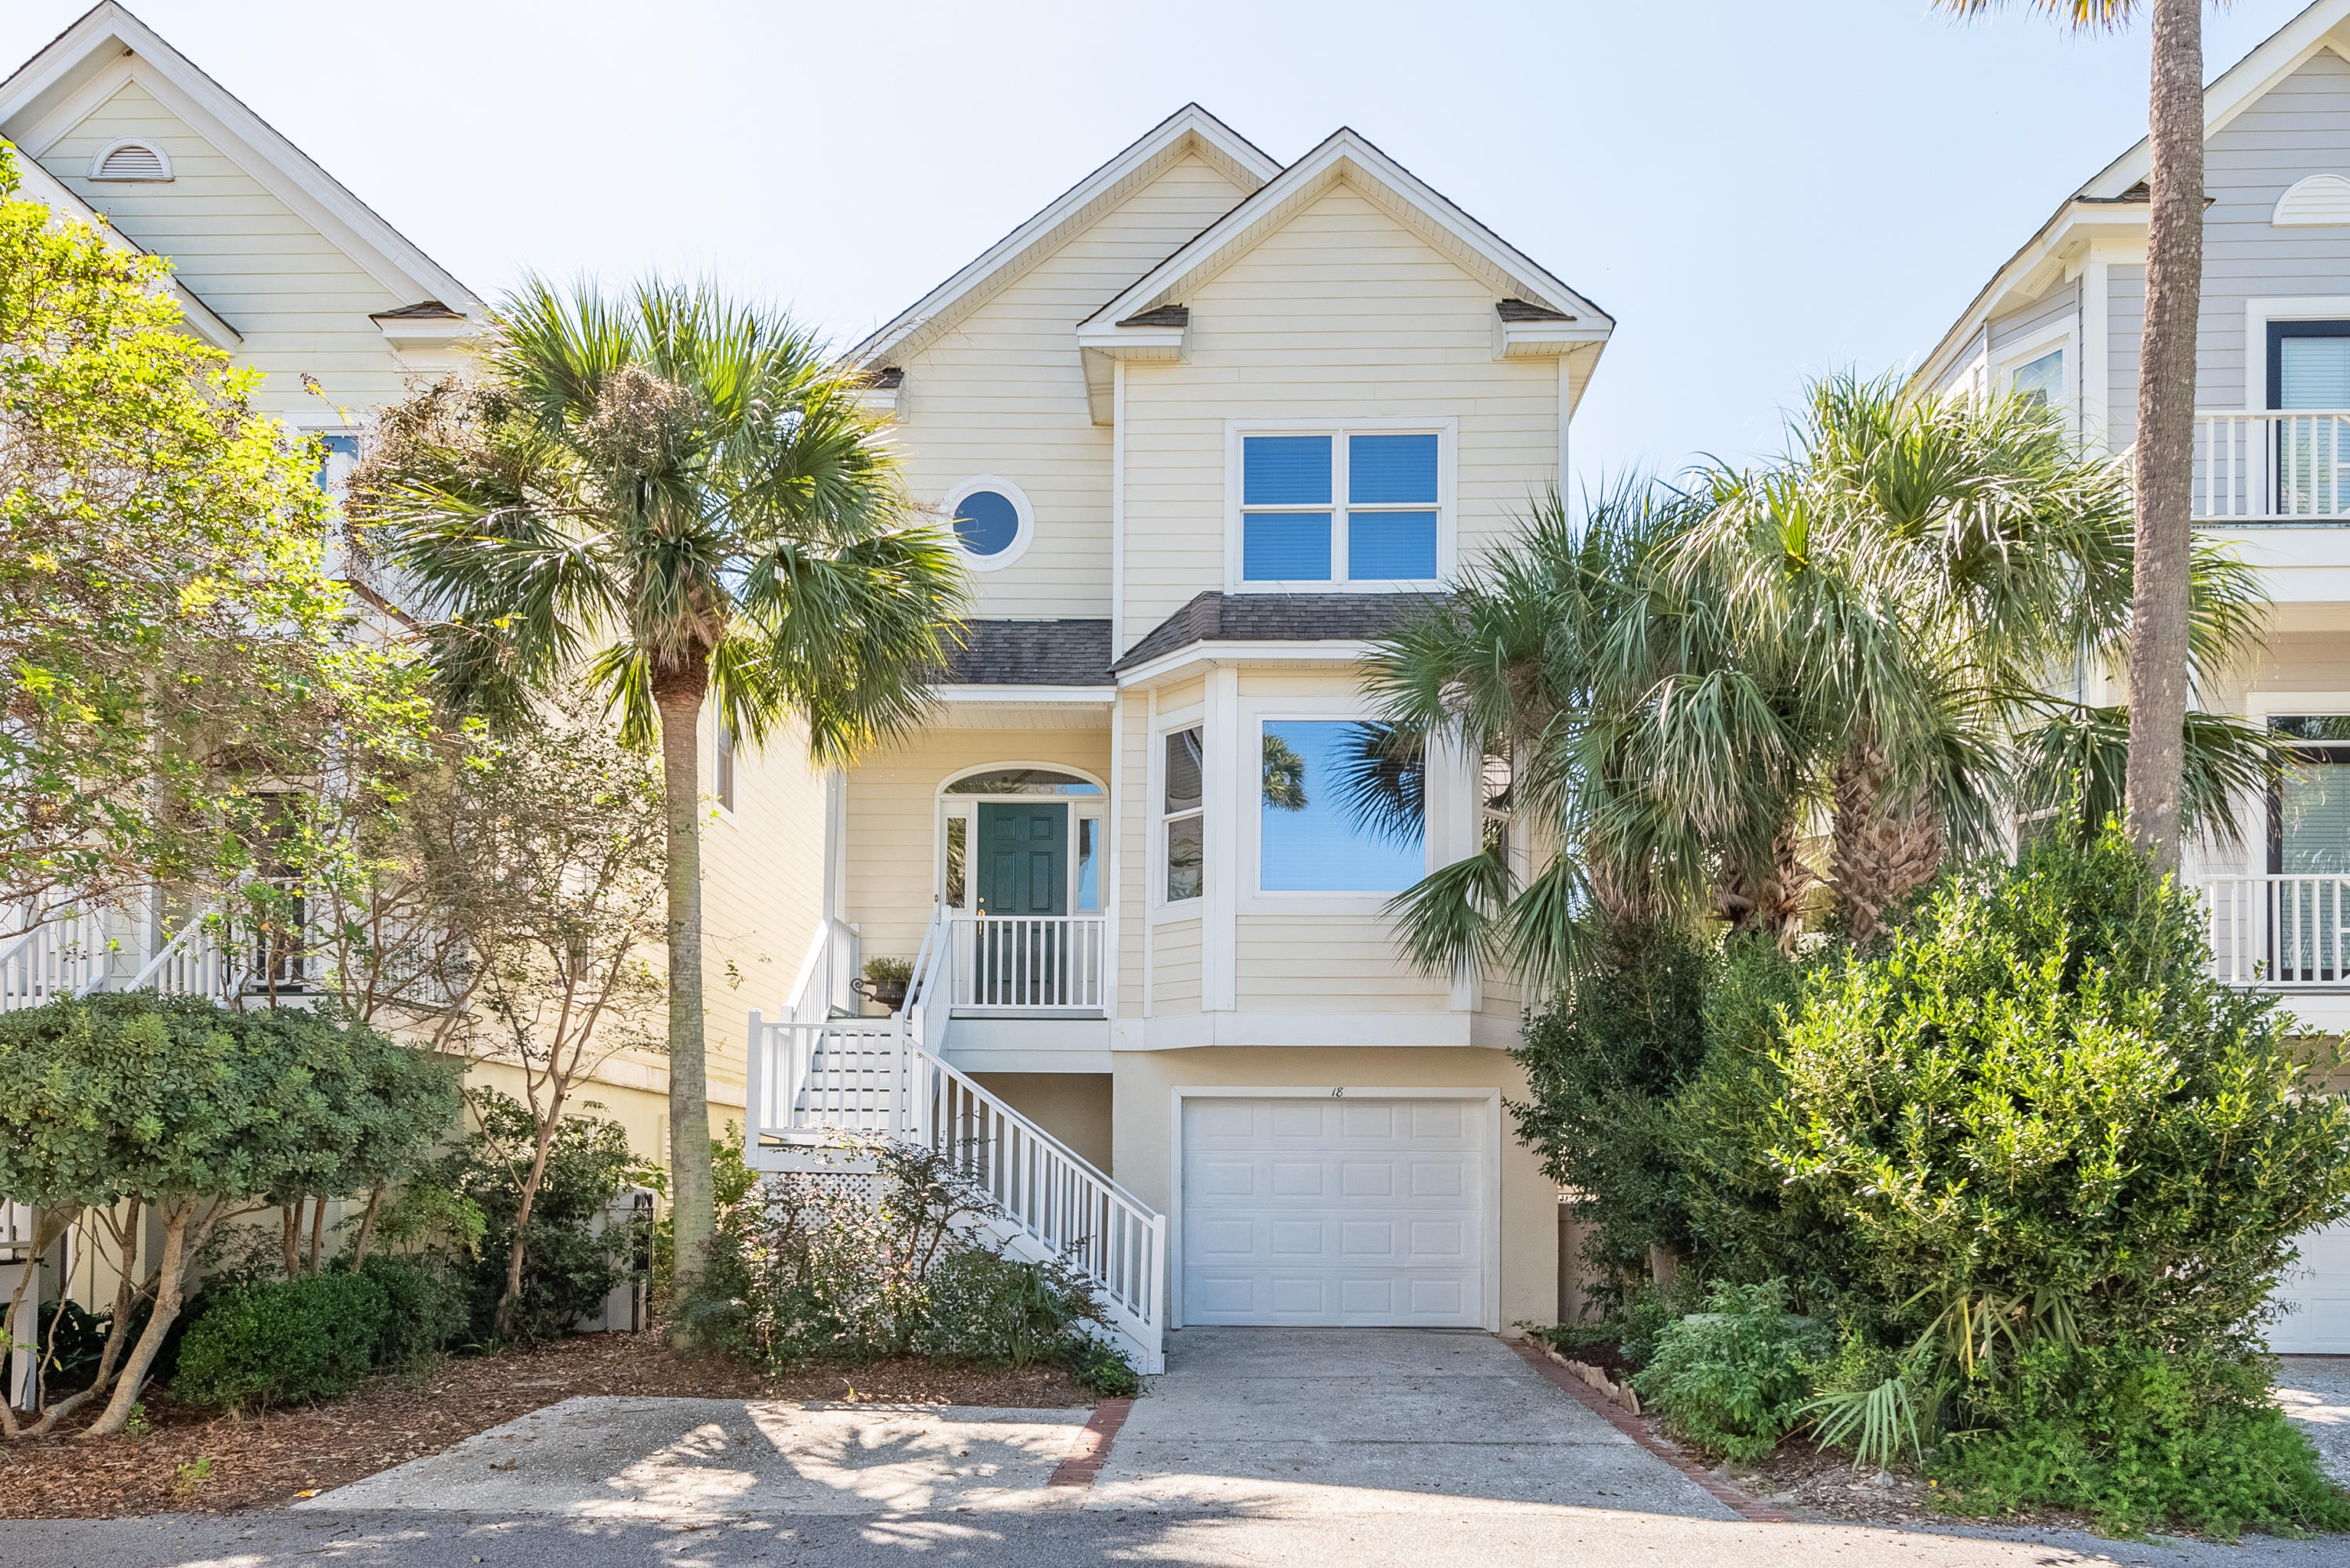 Wild Dunes Homes For Sale - 18 Commons, Isle of Palms, SC - 26